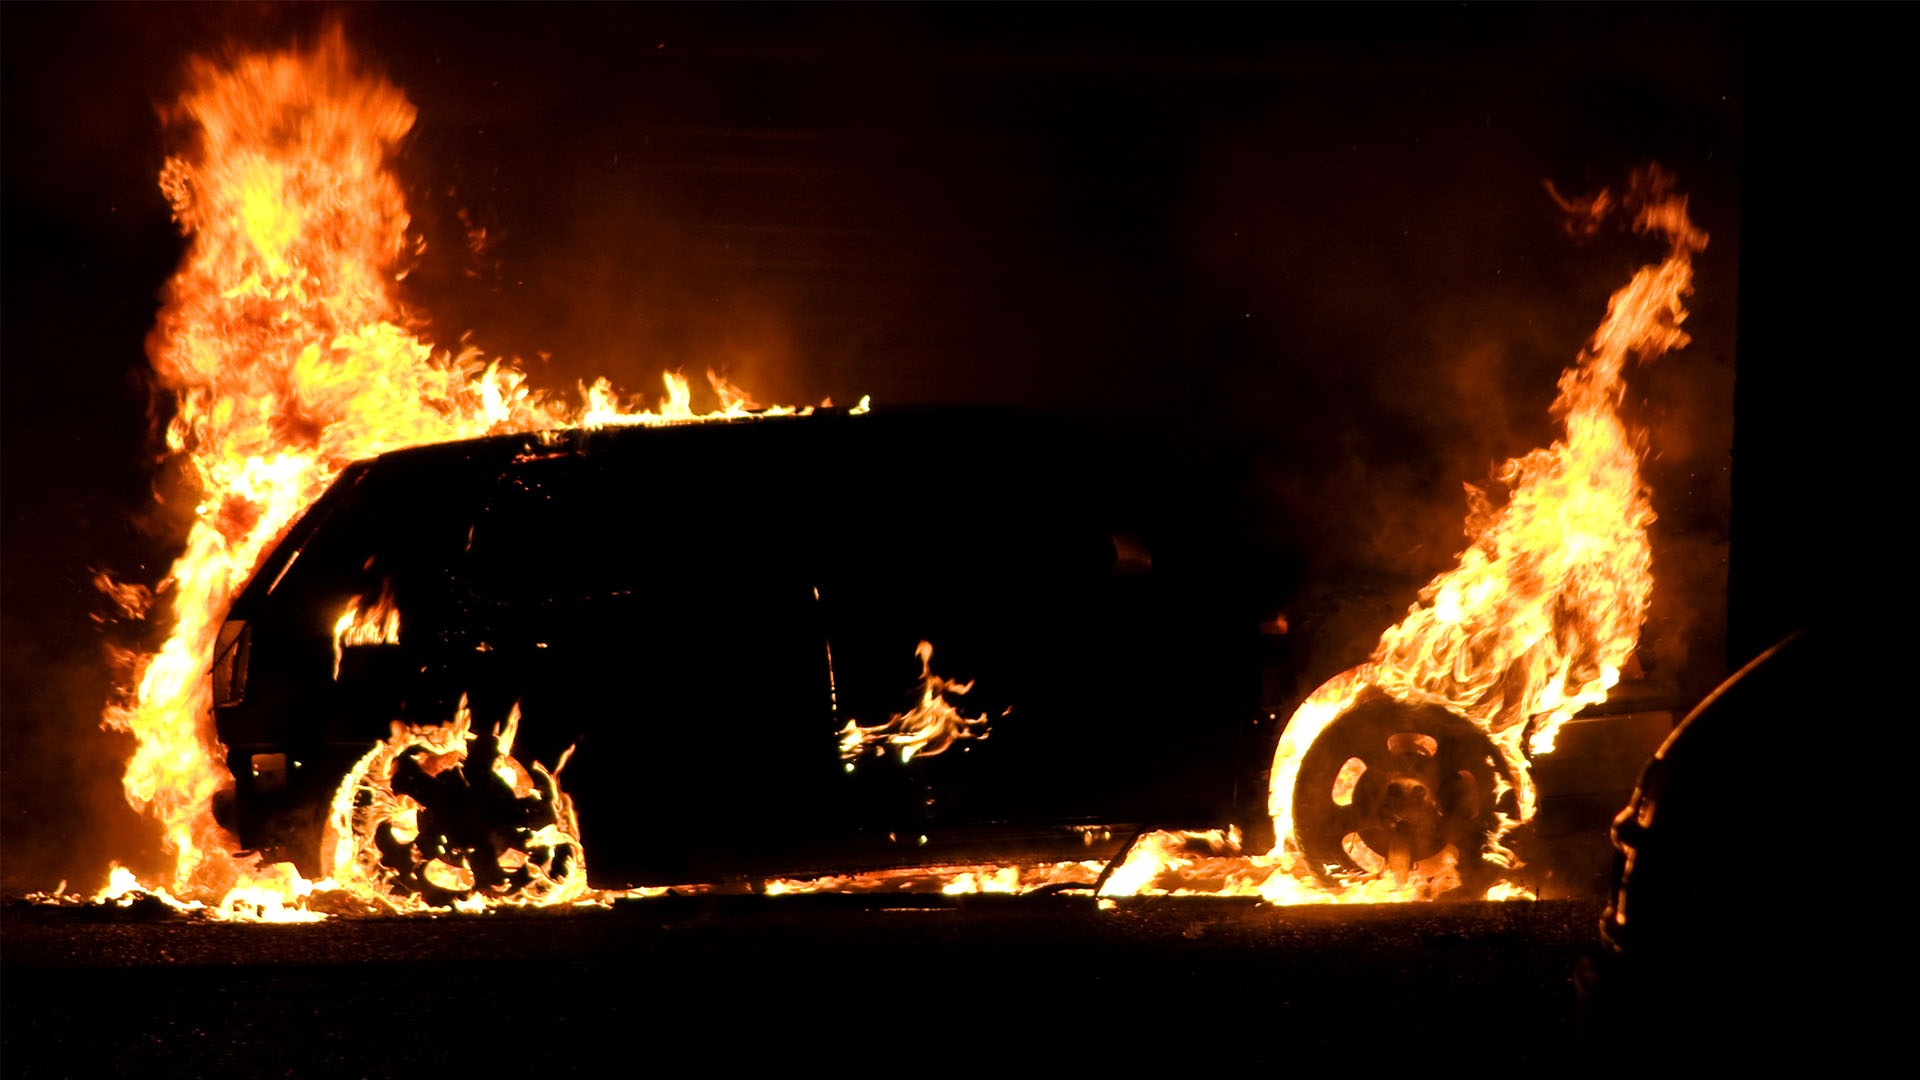 car vw golf on fire 1920x1080 14 hd Best HD Fire Desktop Wallpapers 1920x1080